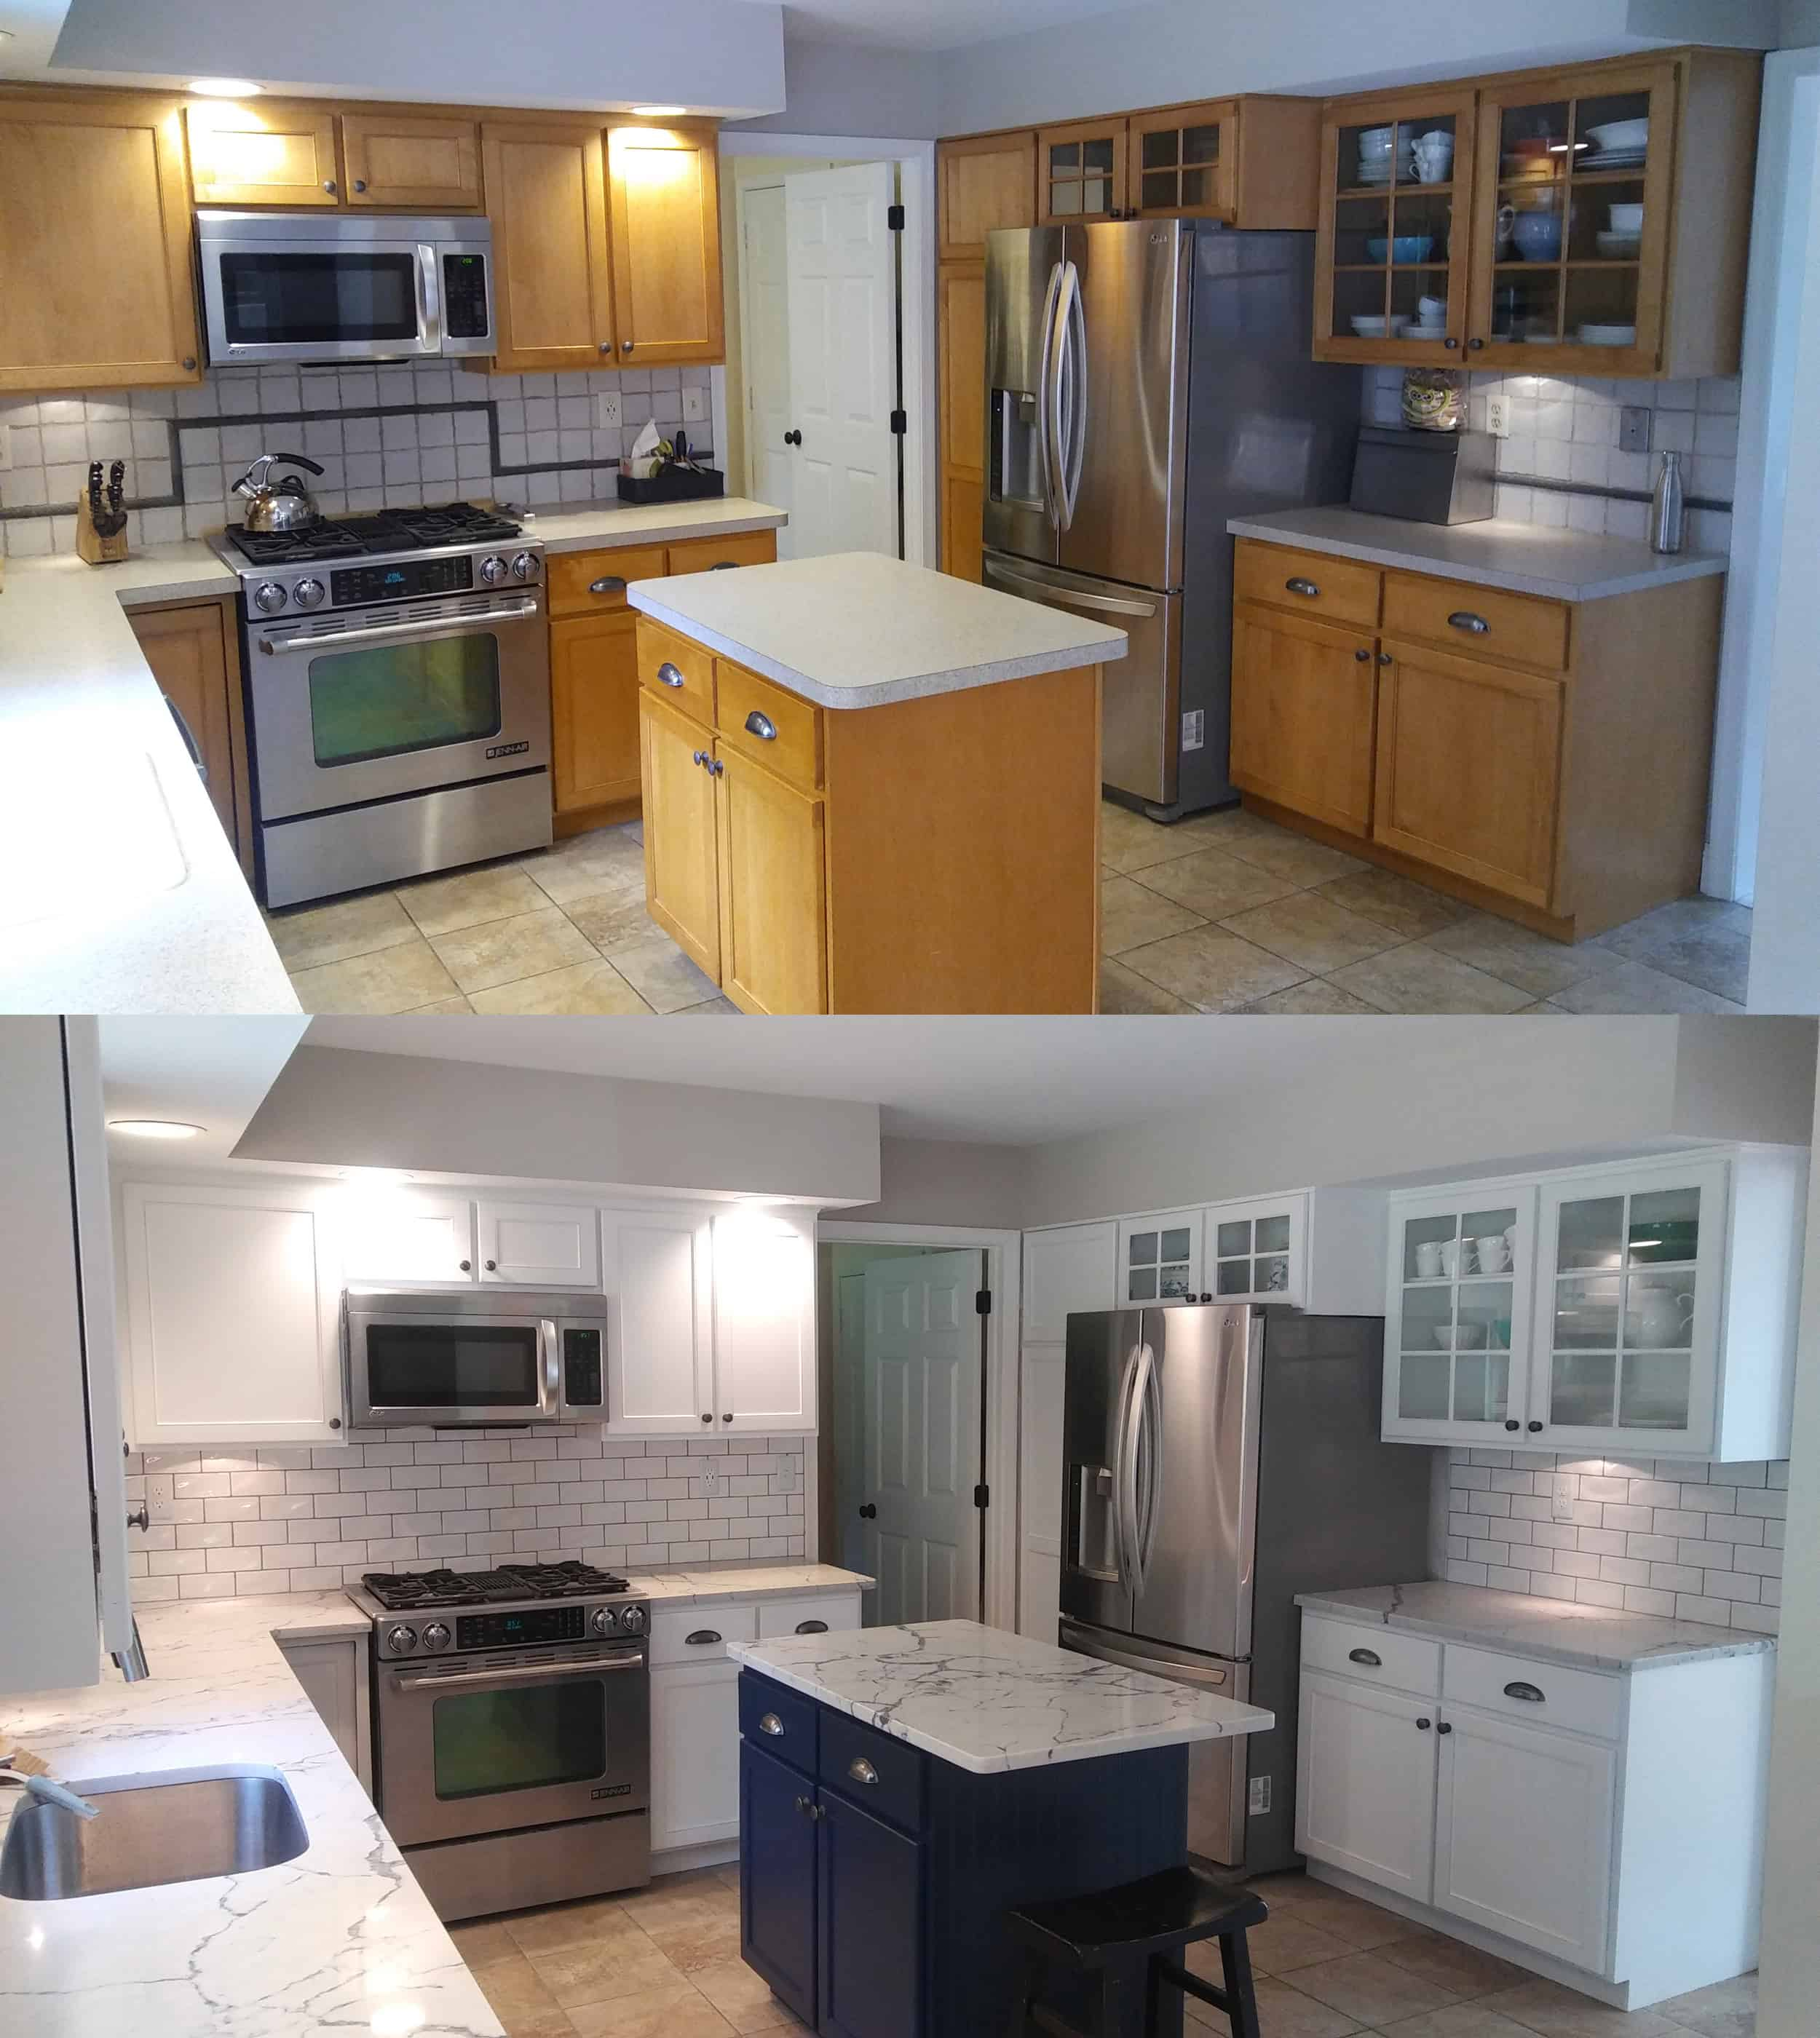 Kitchen cabinet painting before and after - MORTON Painting ...